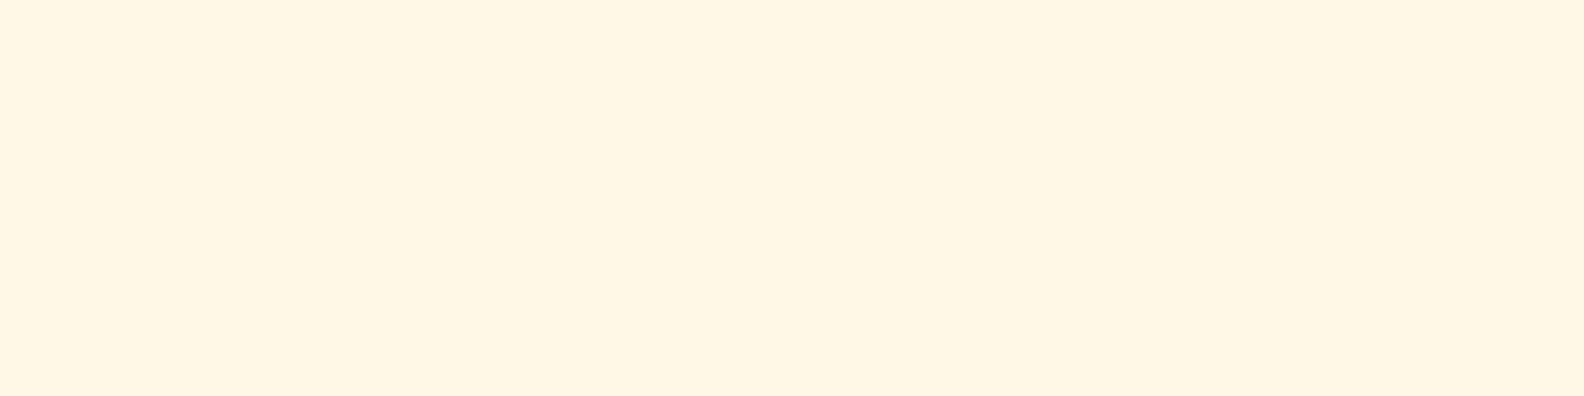 1584x396 Cosmic Latte Solid Color Background